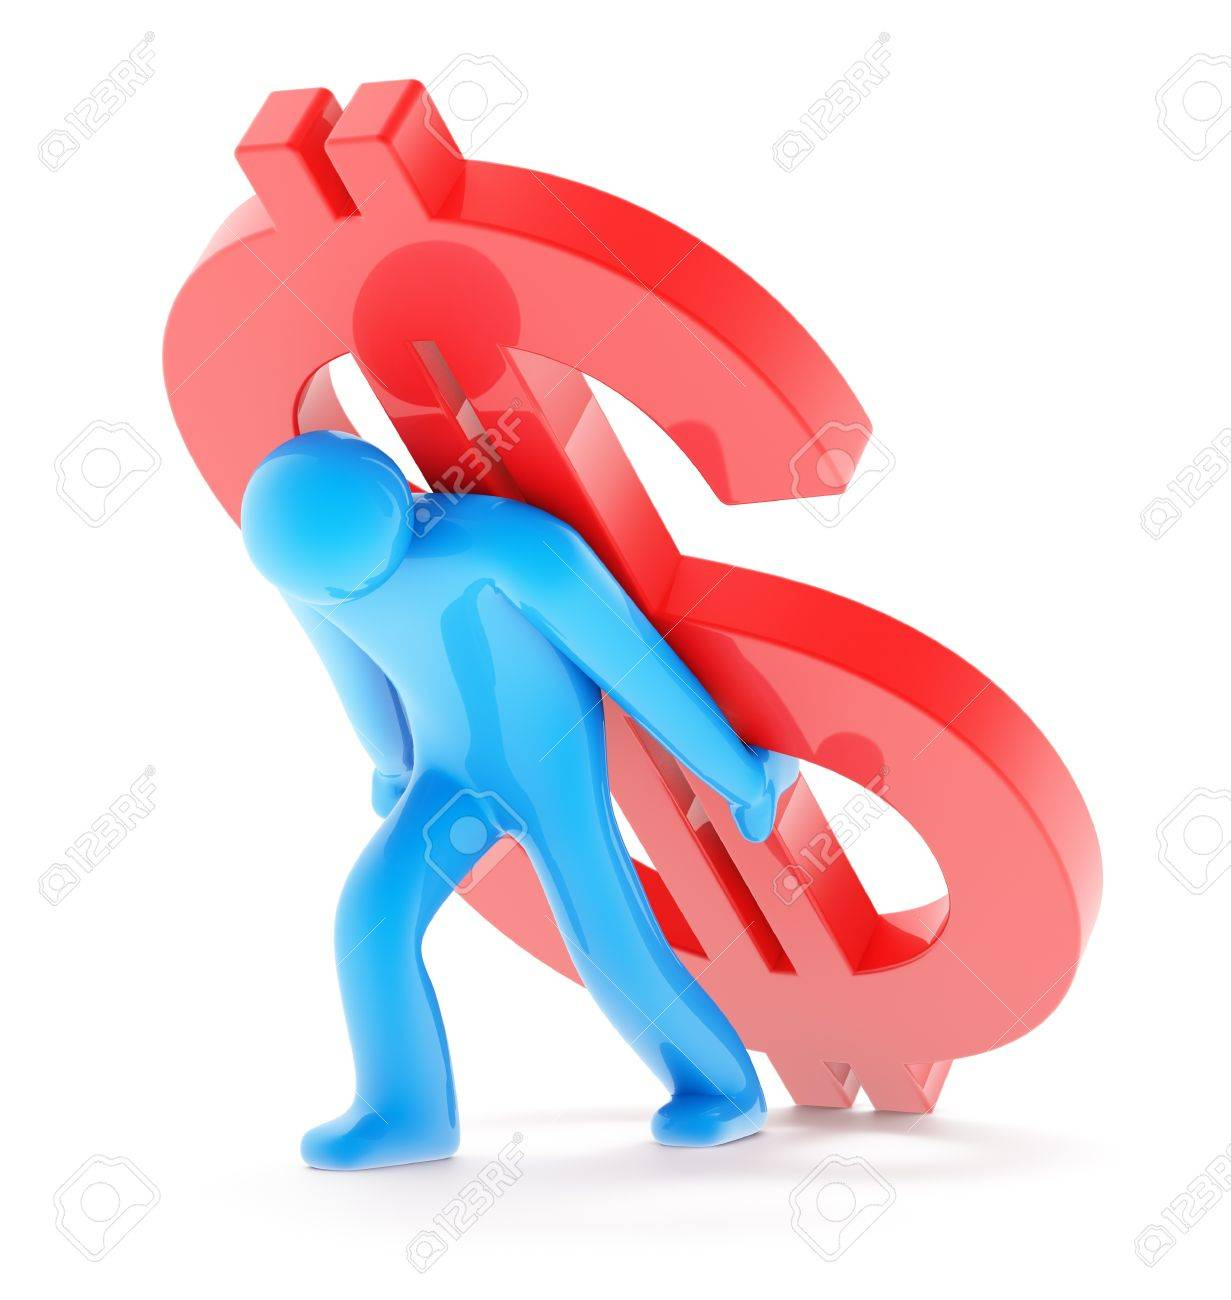 Blue man figure carring red dollar sign, isolated on white background, 3d render Stock Photo - 10164276